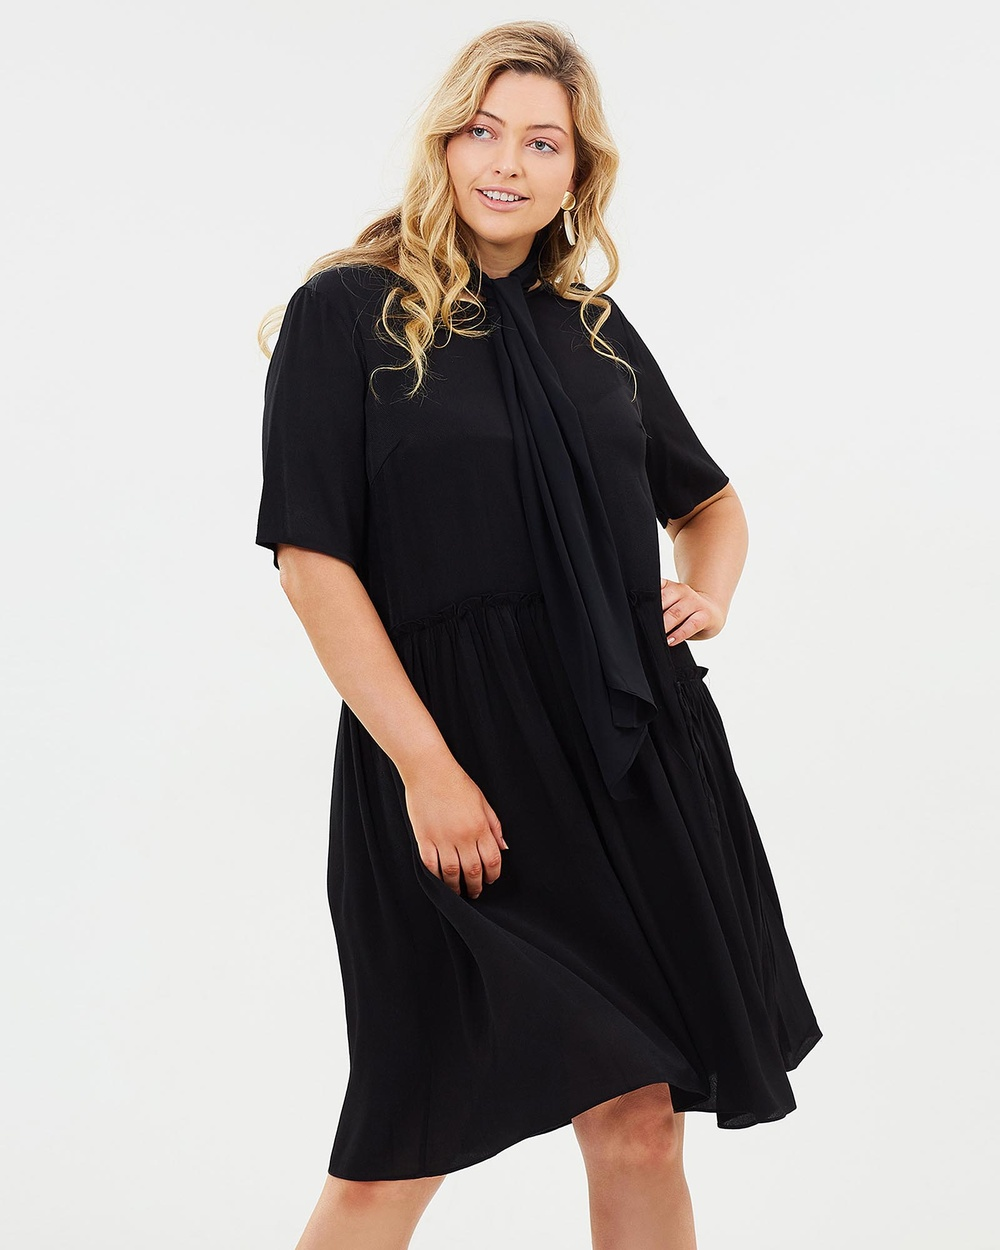 Advocado Plus Final Frontier Gathered Dress Dresses Black Final Frontier Gathered Dress